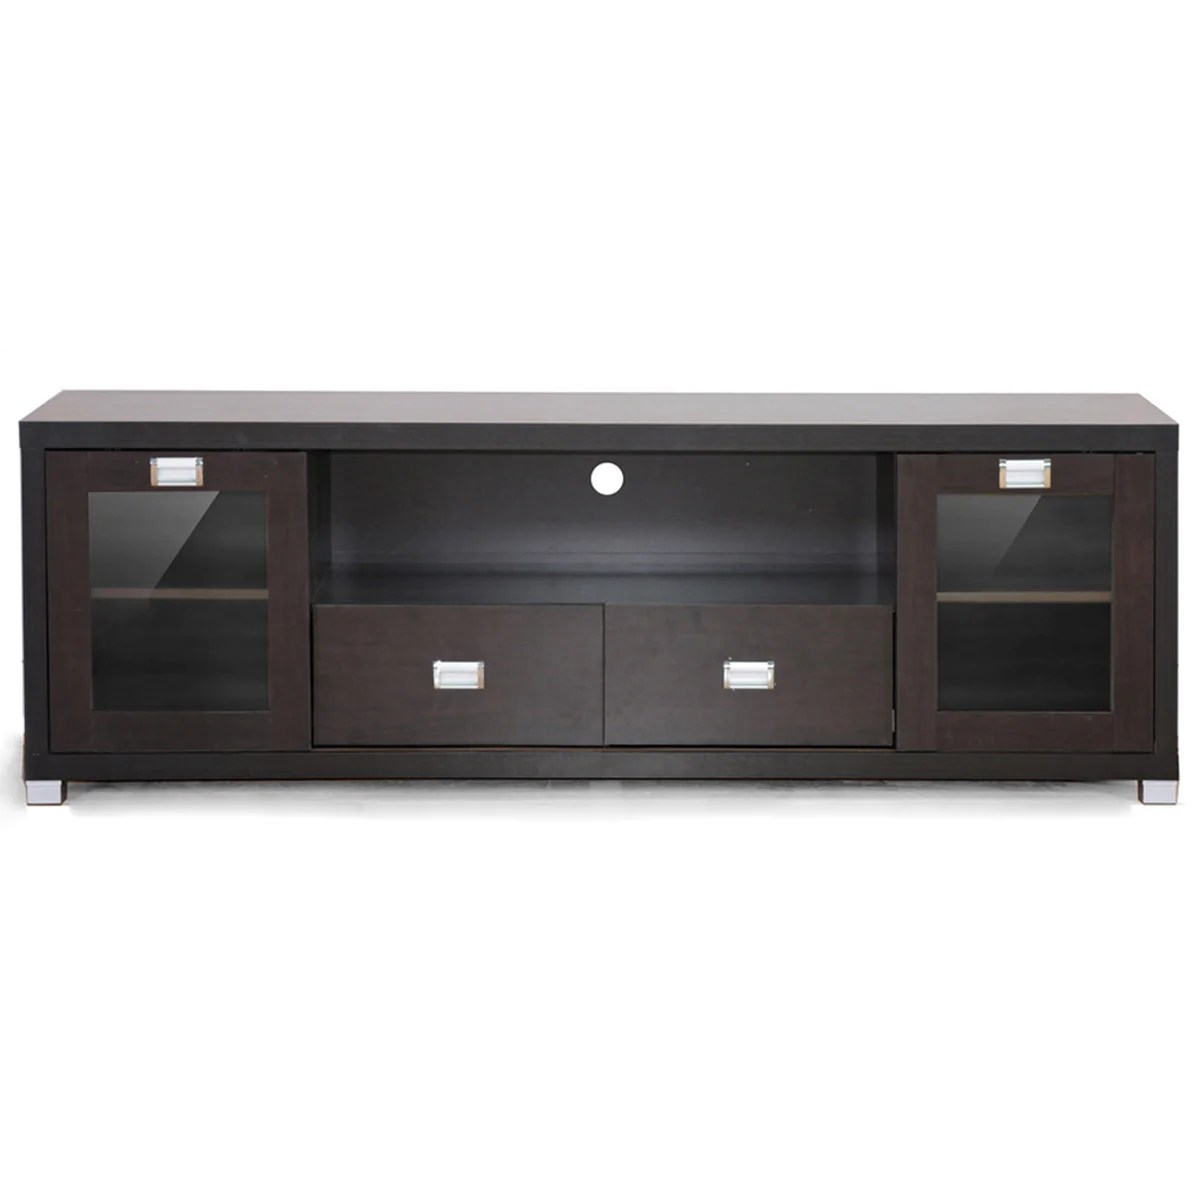 Tv Sideboard Modern Gosford Brown Wood Modern Tv Stand